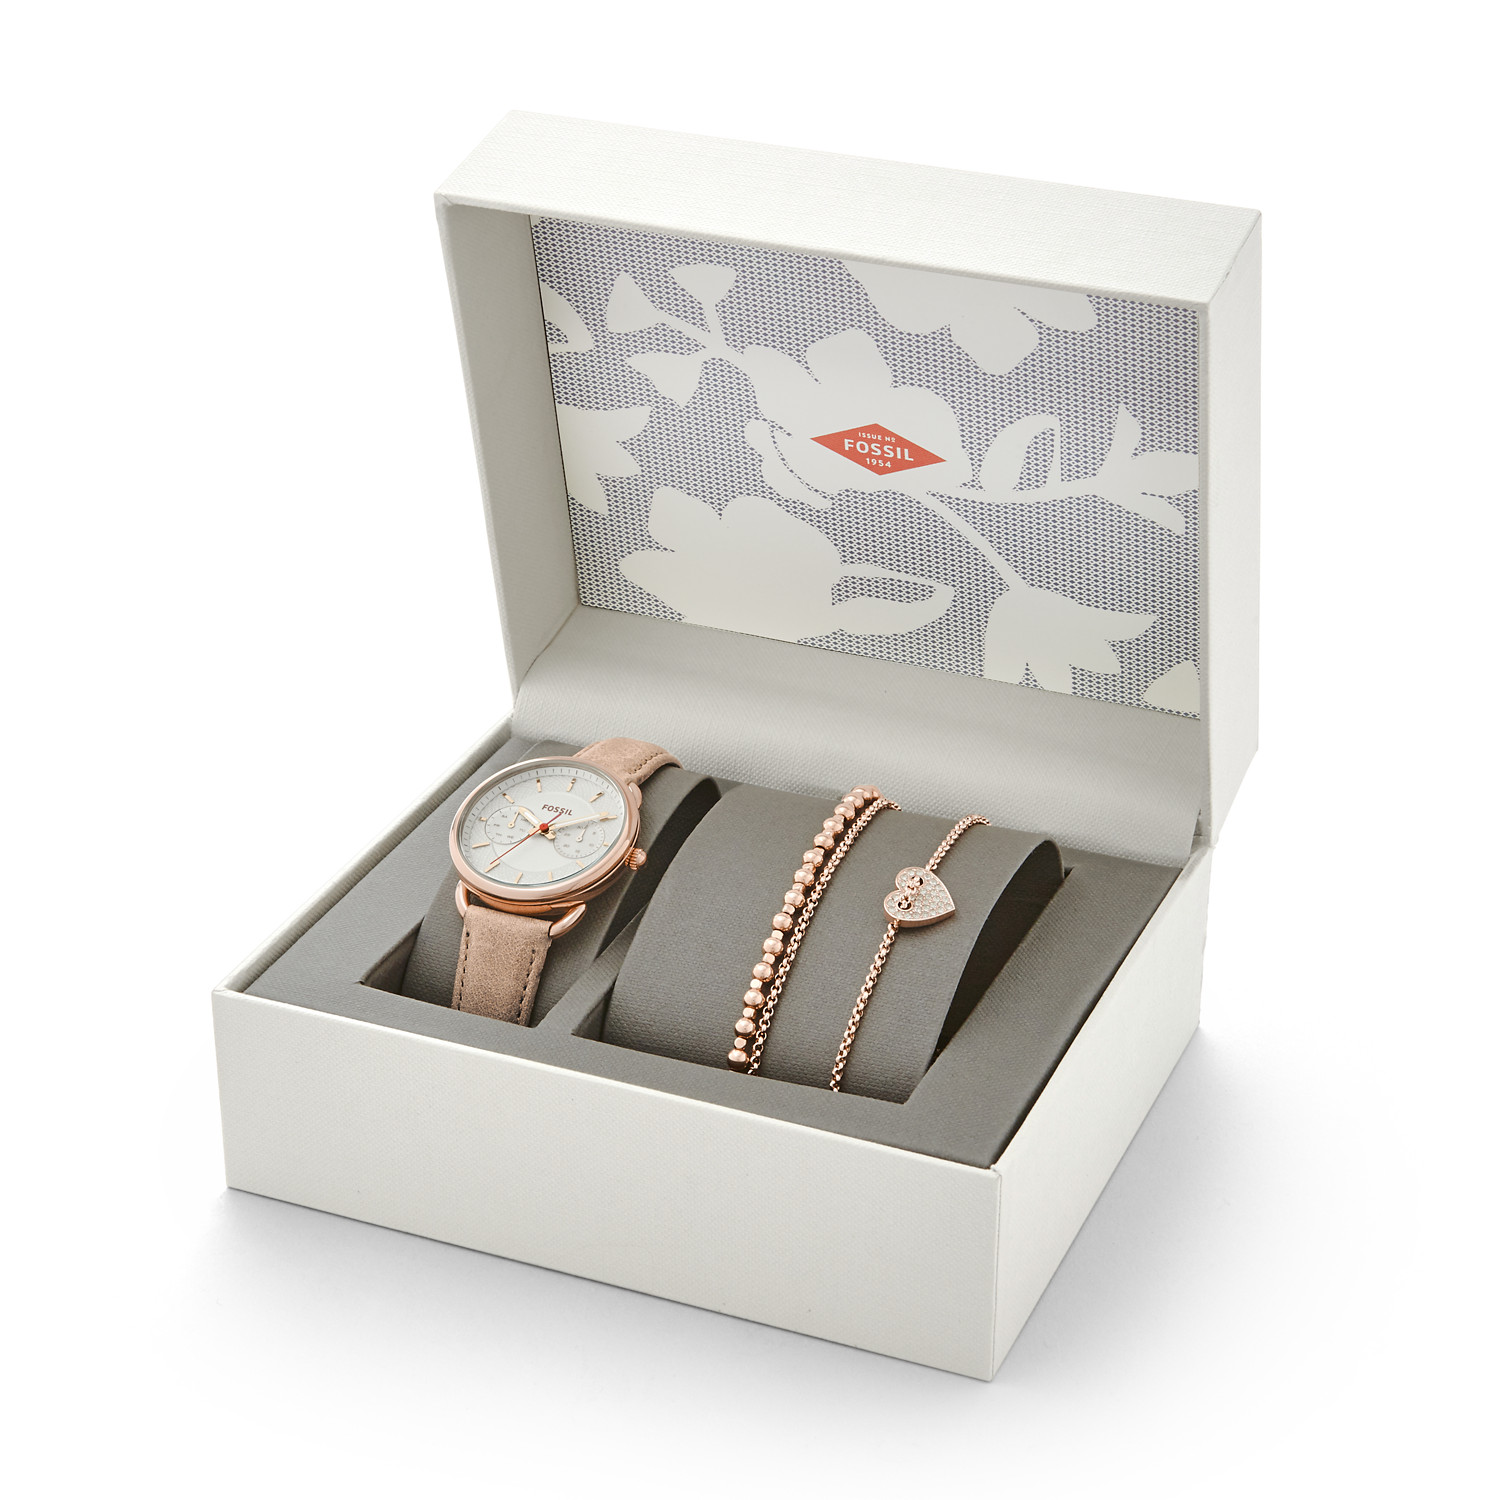 Fossil New July Edition Warung Jam Tangan Original Es3225 Wanita Tailor Es4021set